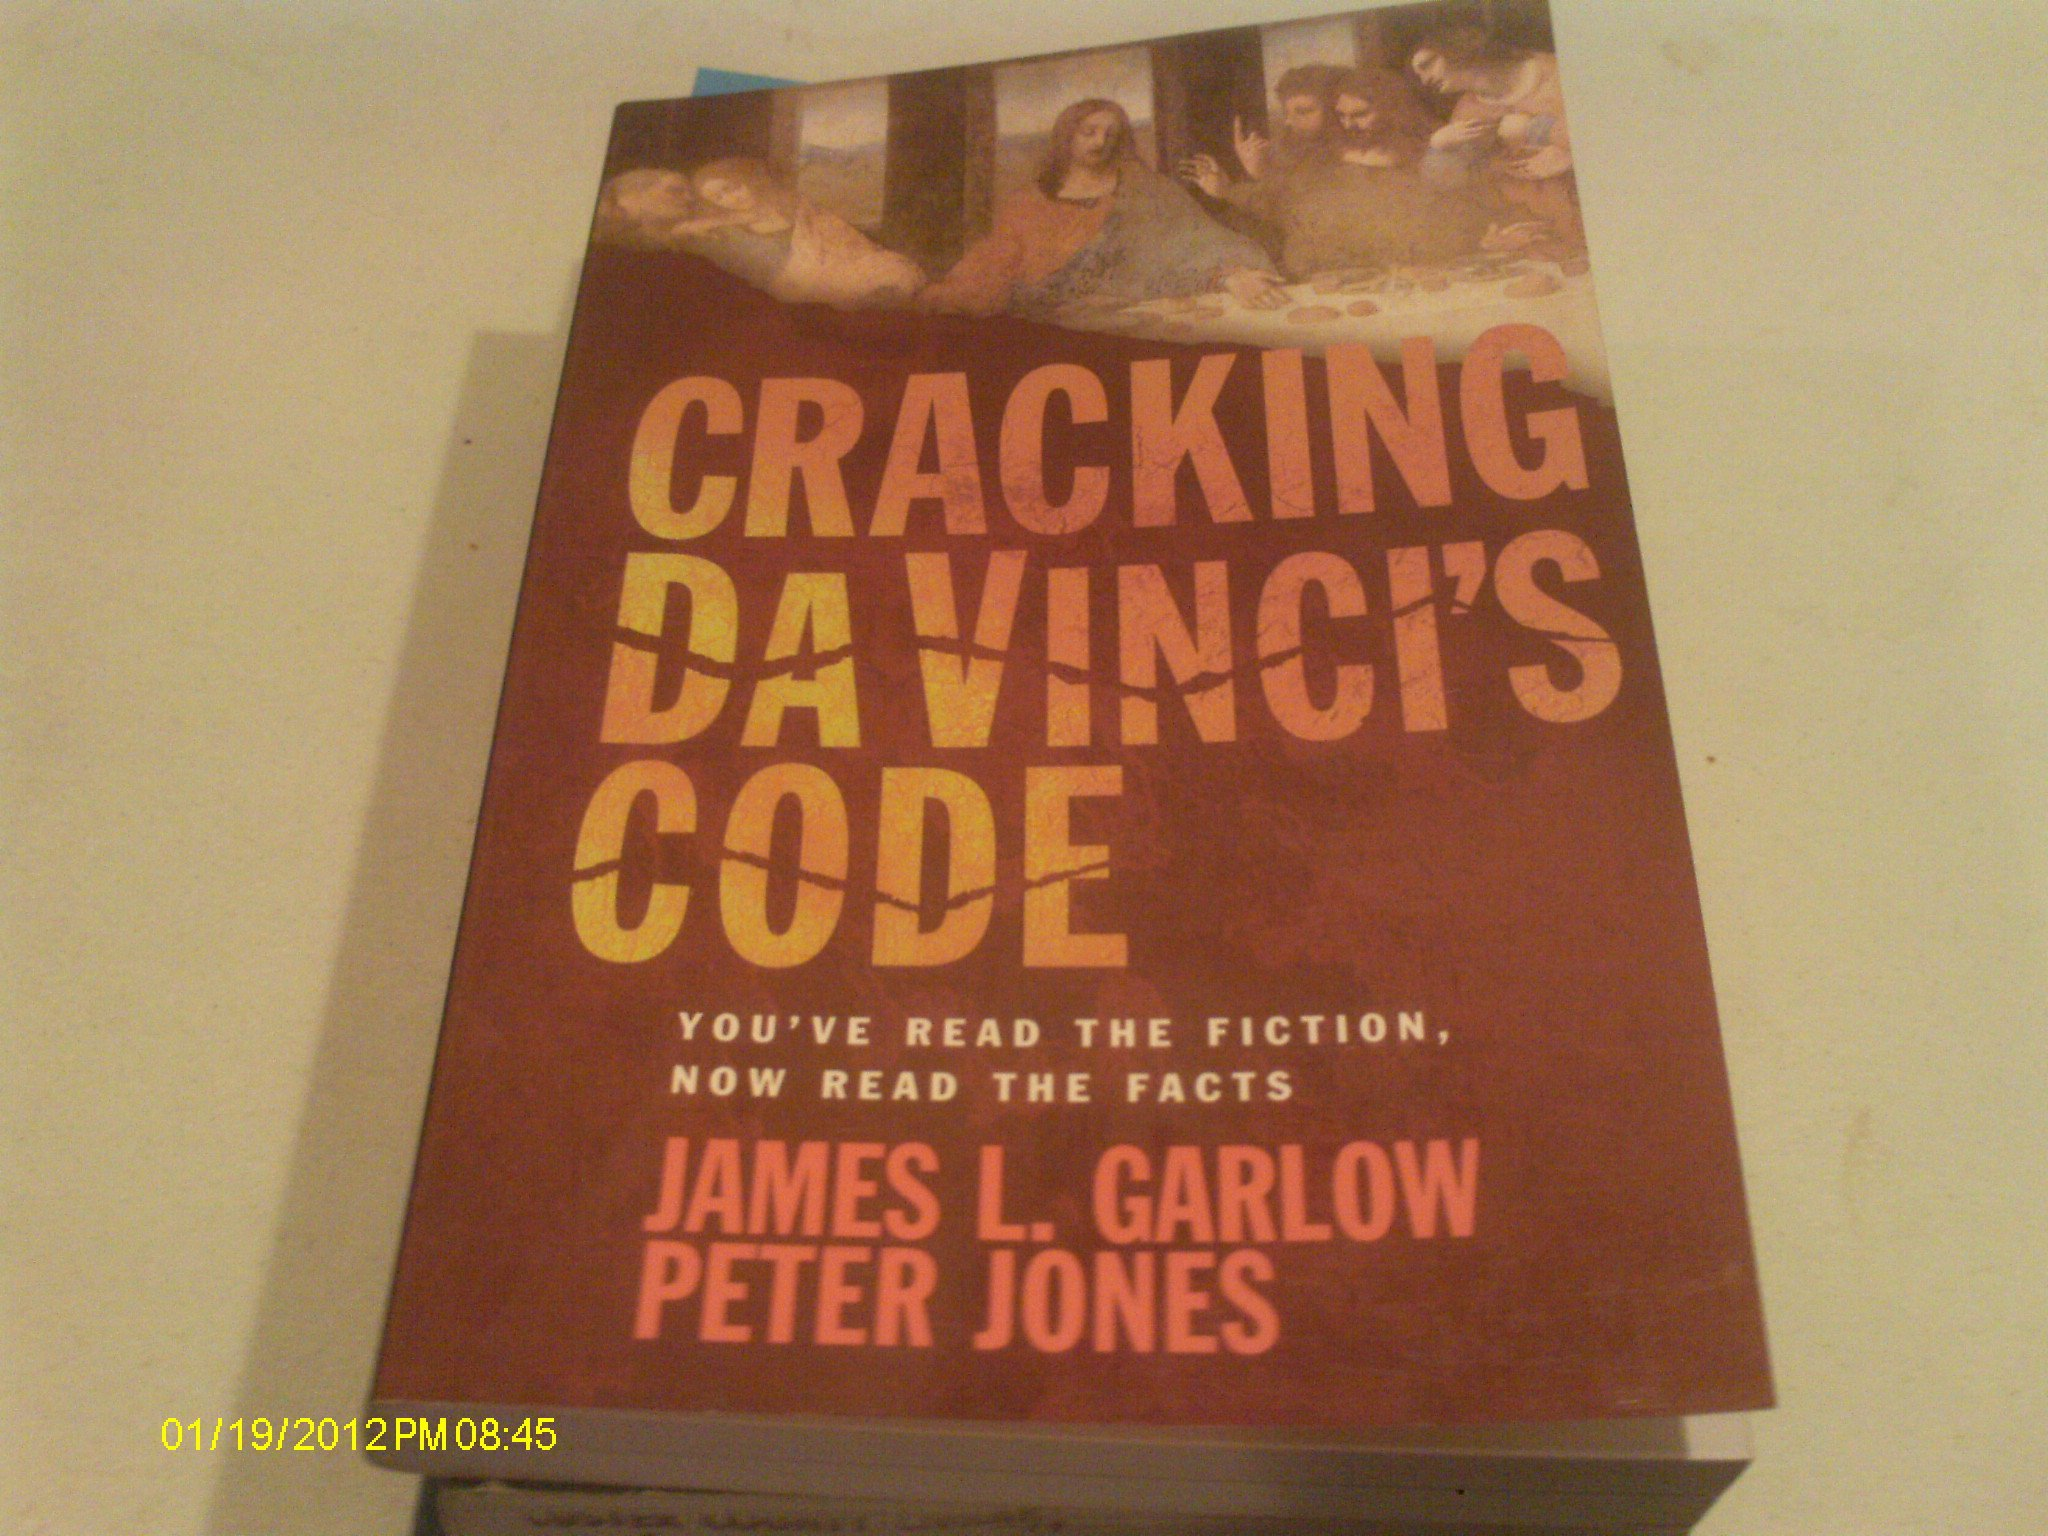 Download Cracking Da Vinci's Code - You've Read The Fiction, Now Read The Facts pdf